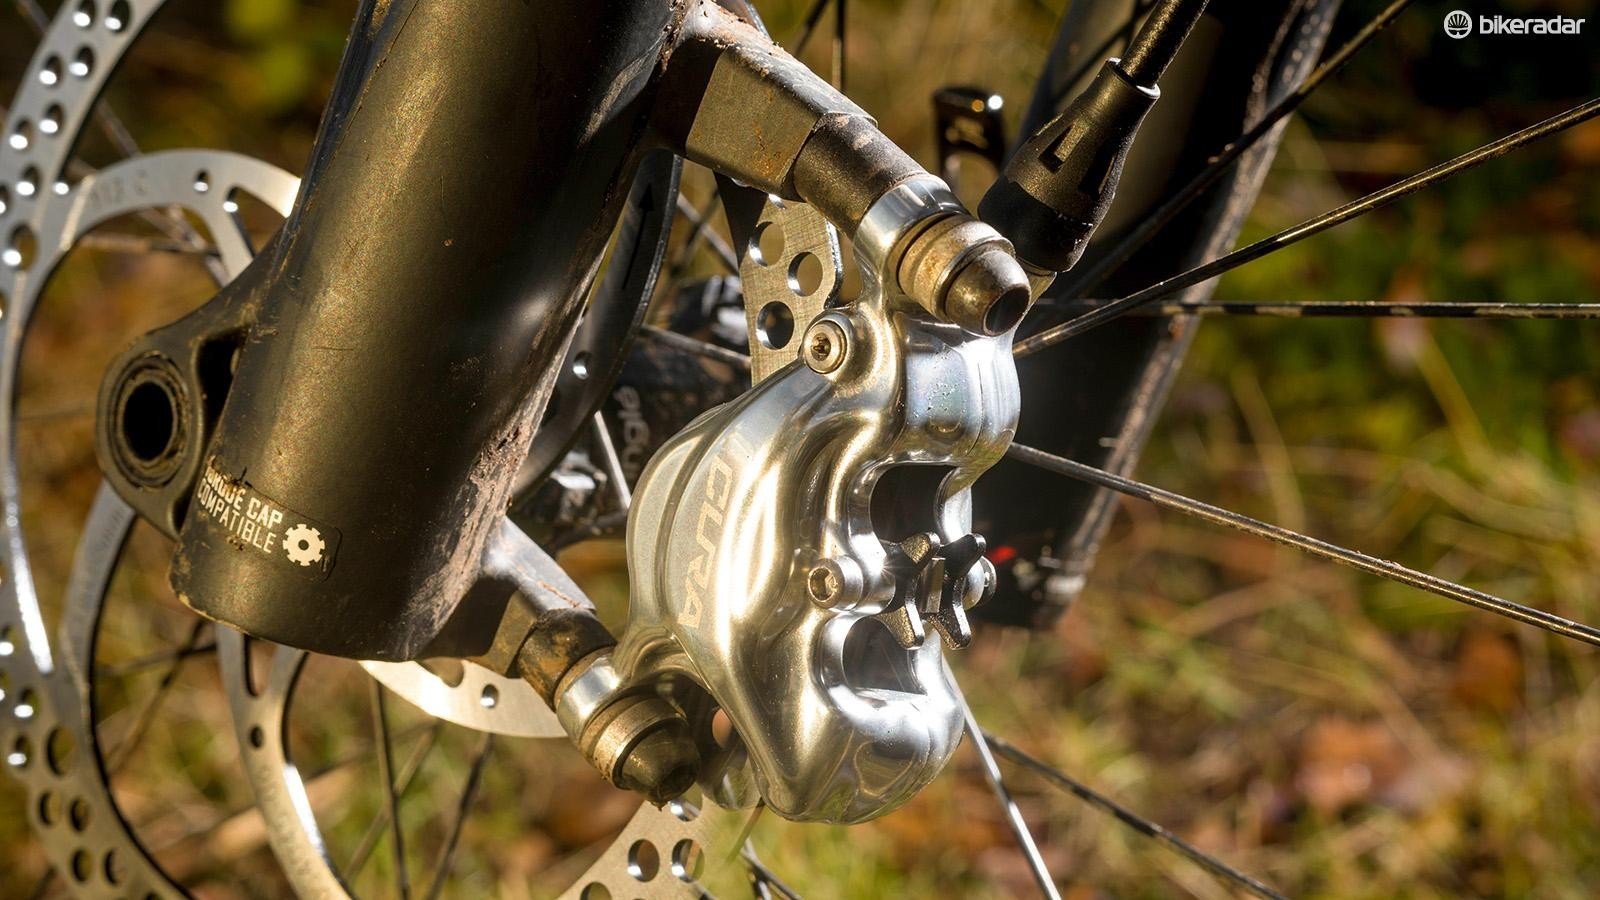 The Cura brake uses mineral oil rather than synthetic DOT fluid